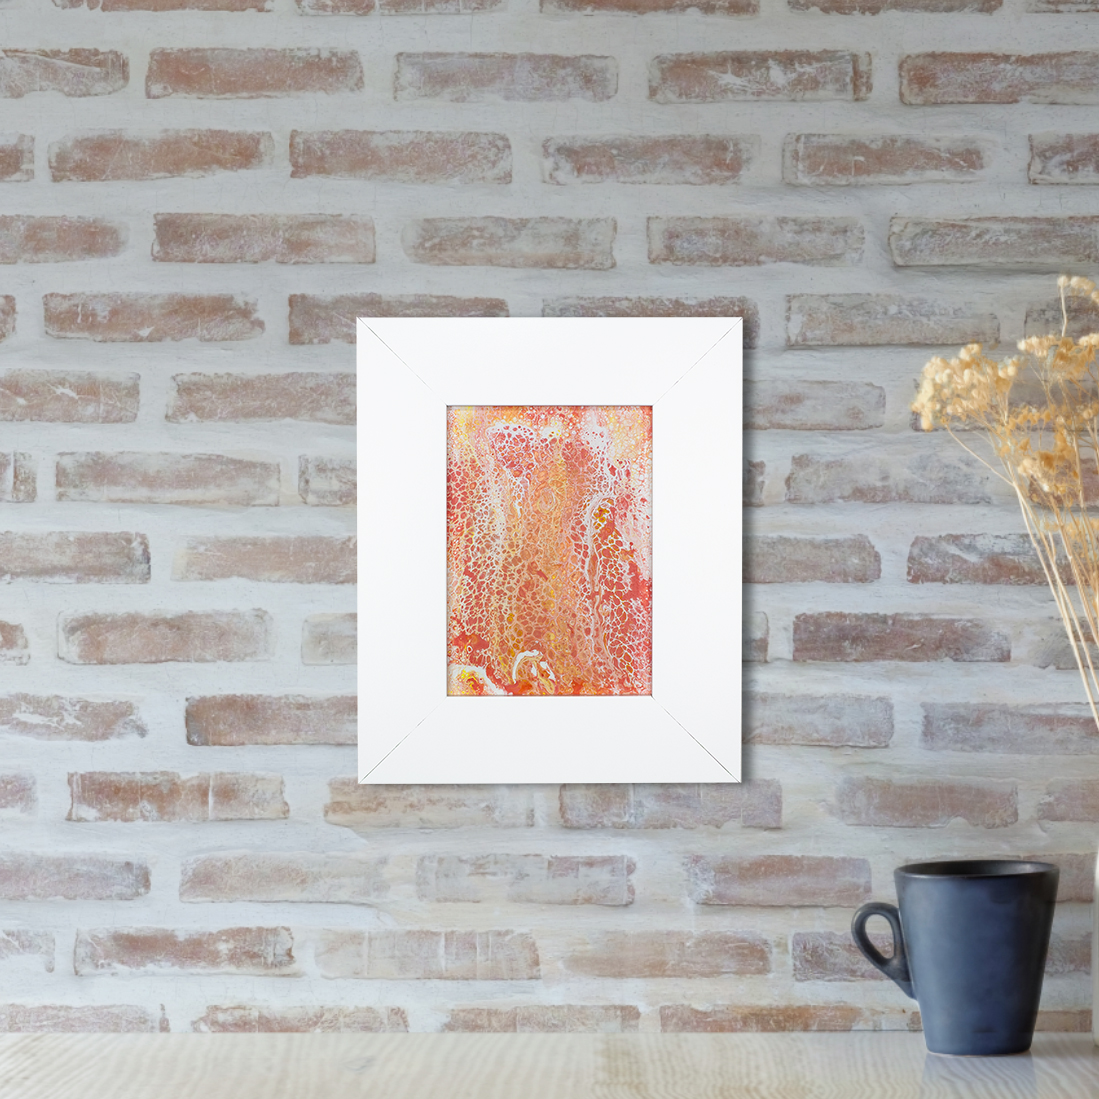 Gemini - a Bohemian Inspired Abstract Flow Painting by Heather Miller, WhiteRose's Art